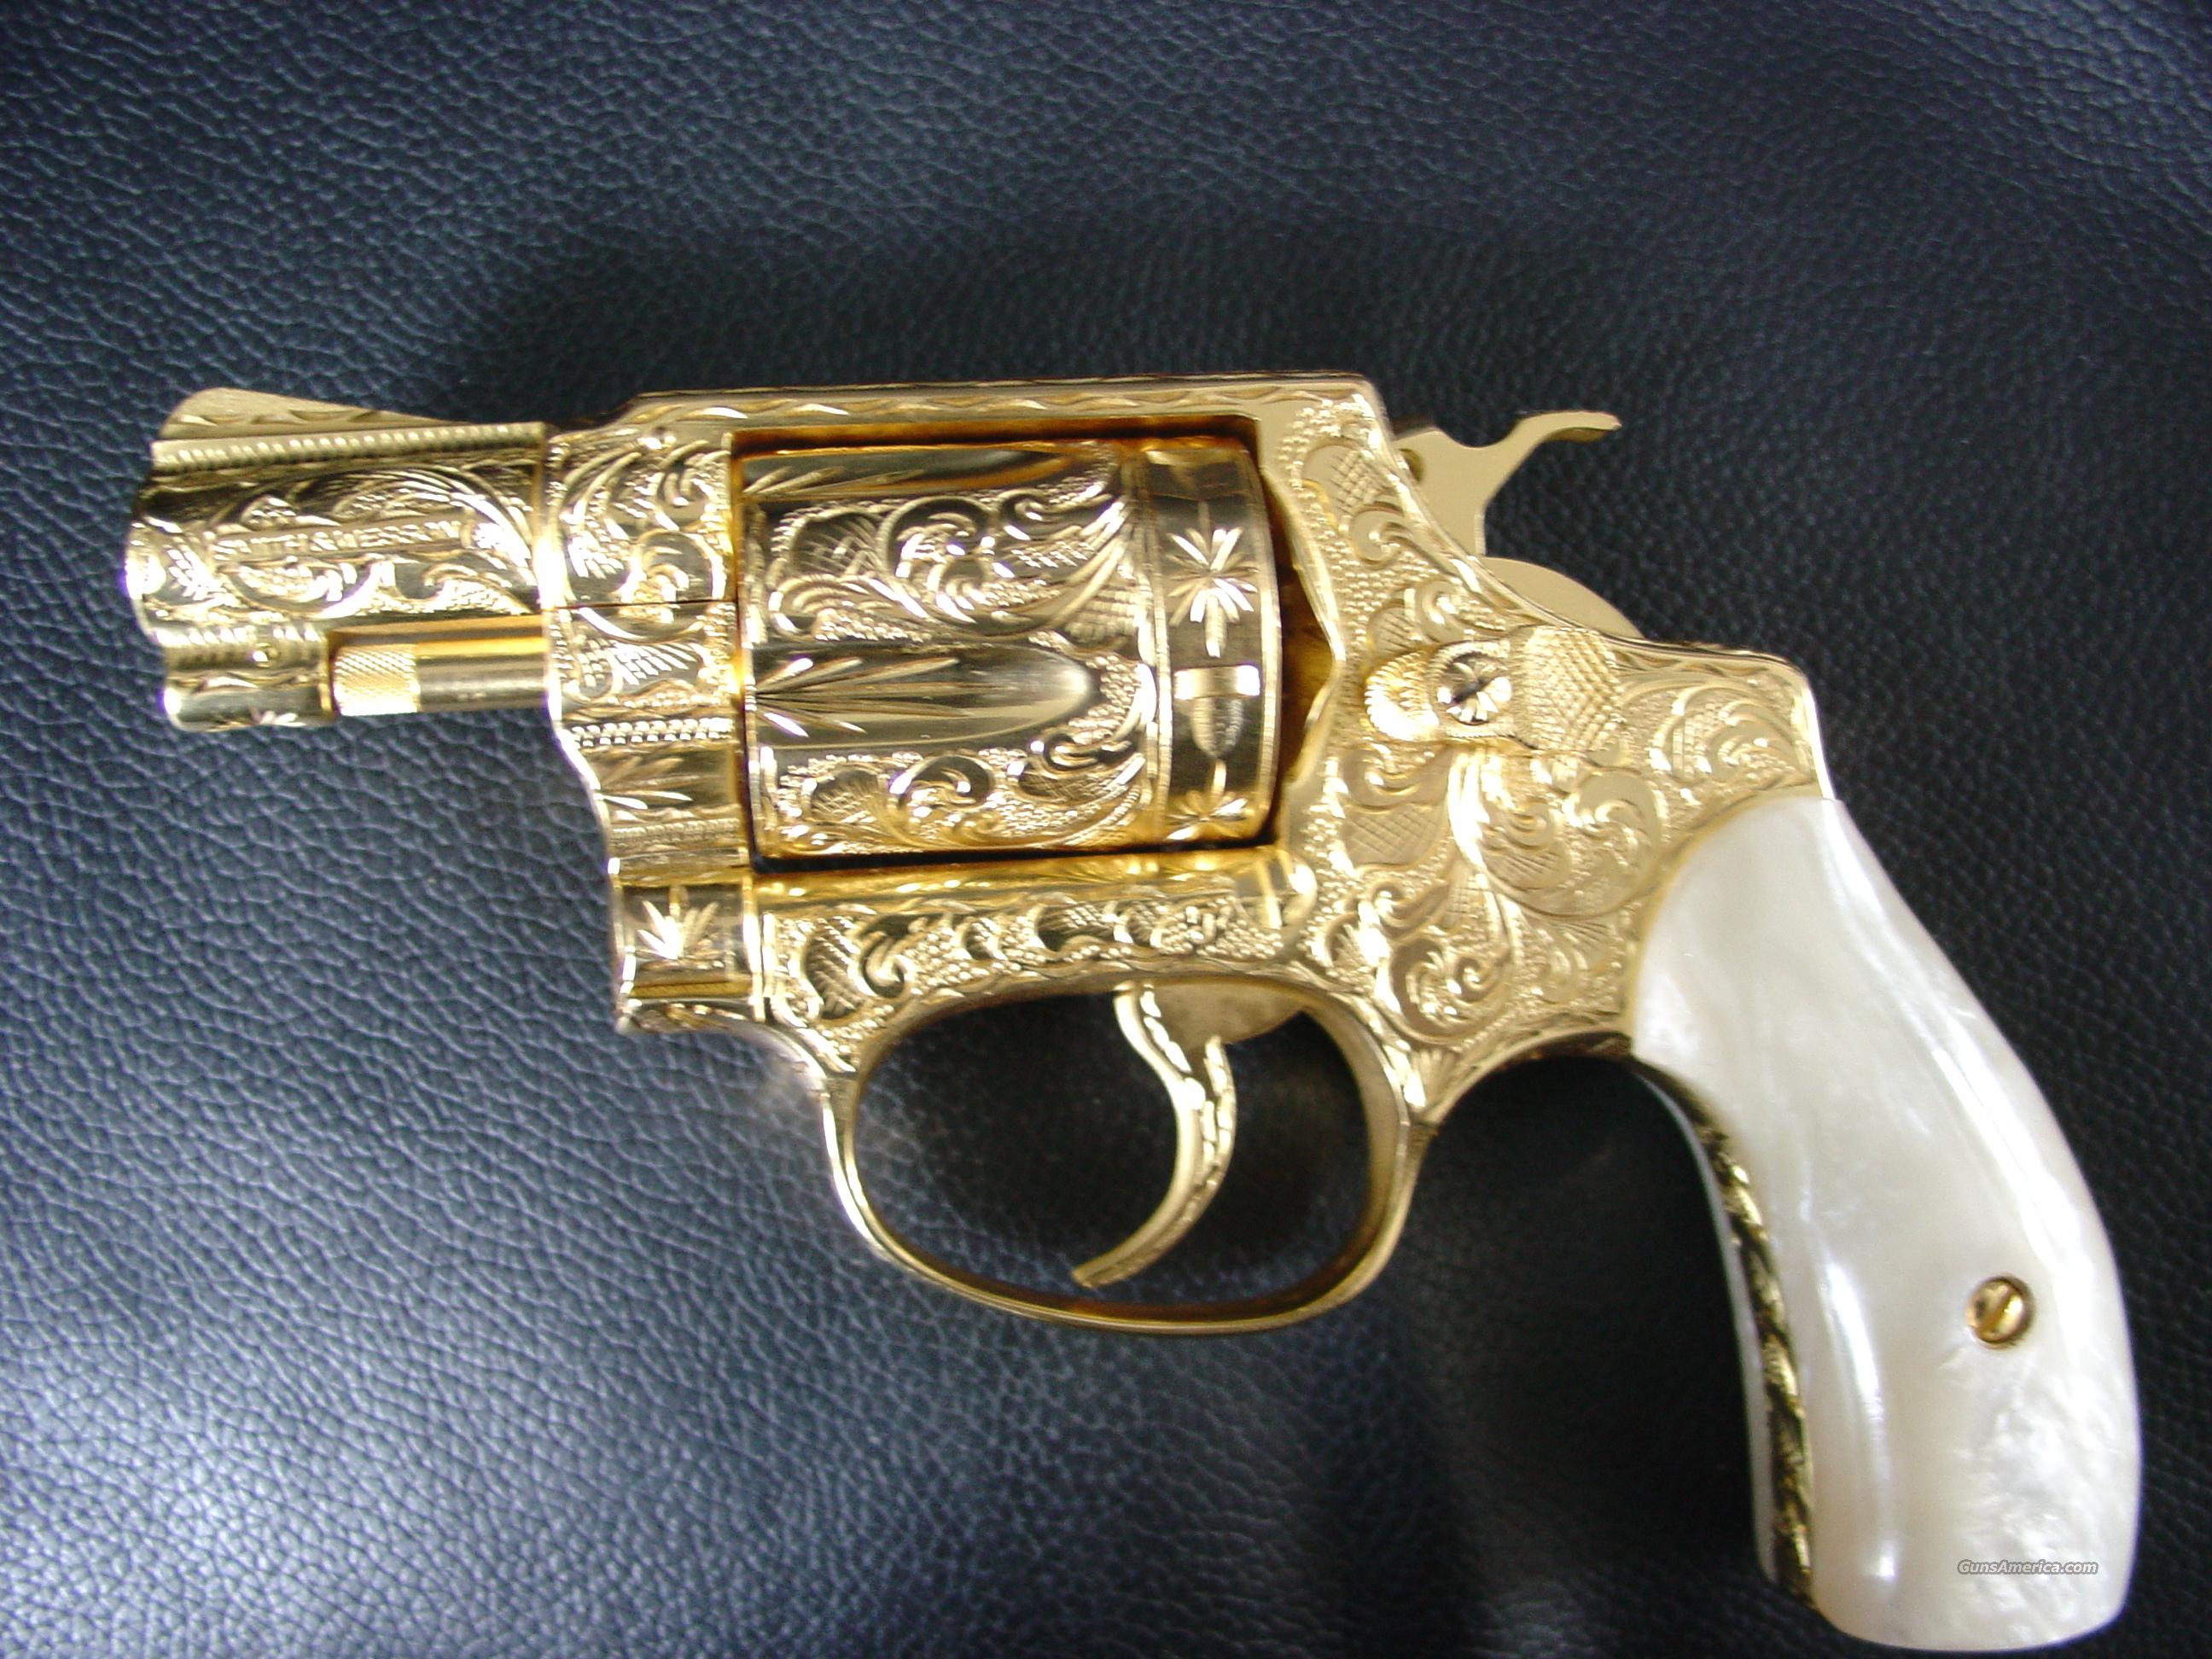 "Smith & Wesson Model 36,no dash,1962-64,24k gold plated,& 100% fully engraved,3 screw,1.53""pinned barrel,pearlite grips,Chiefs Special,38 special,awesome-period !!  Guns > Pistols > Smith & Wesson Revolvers > Pocket Pistols"